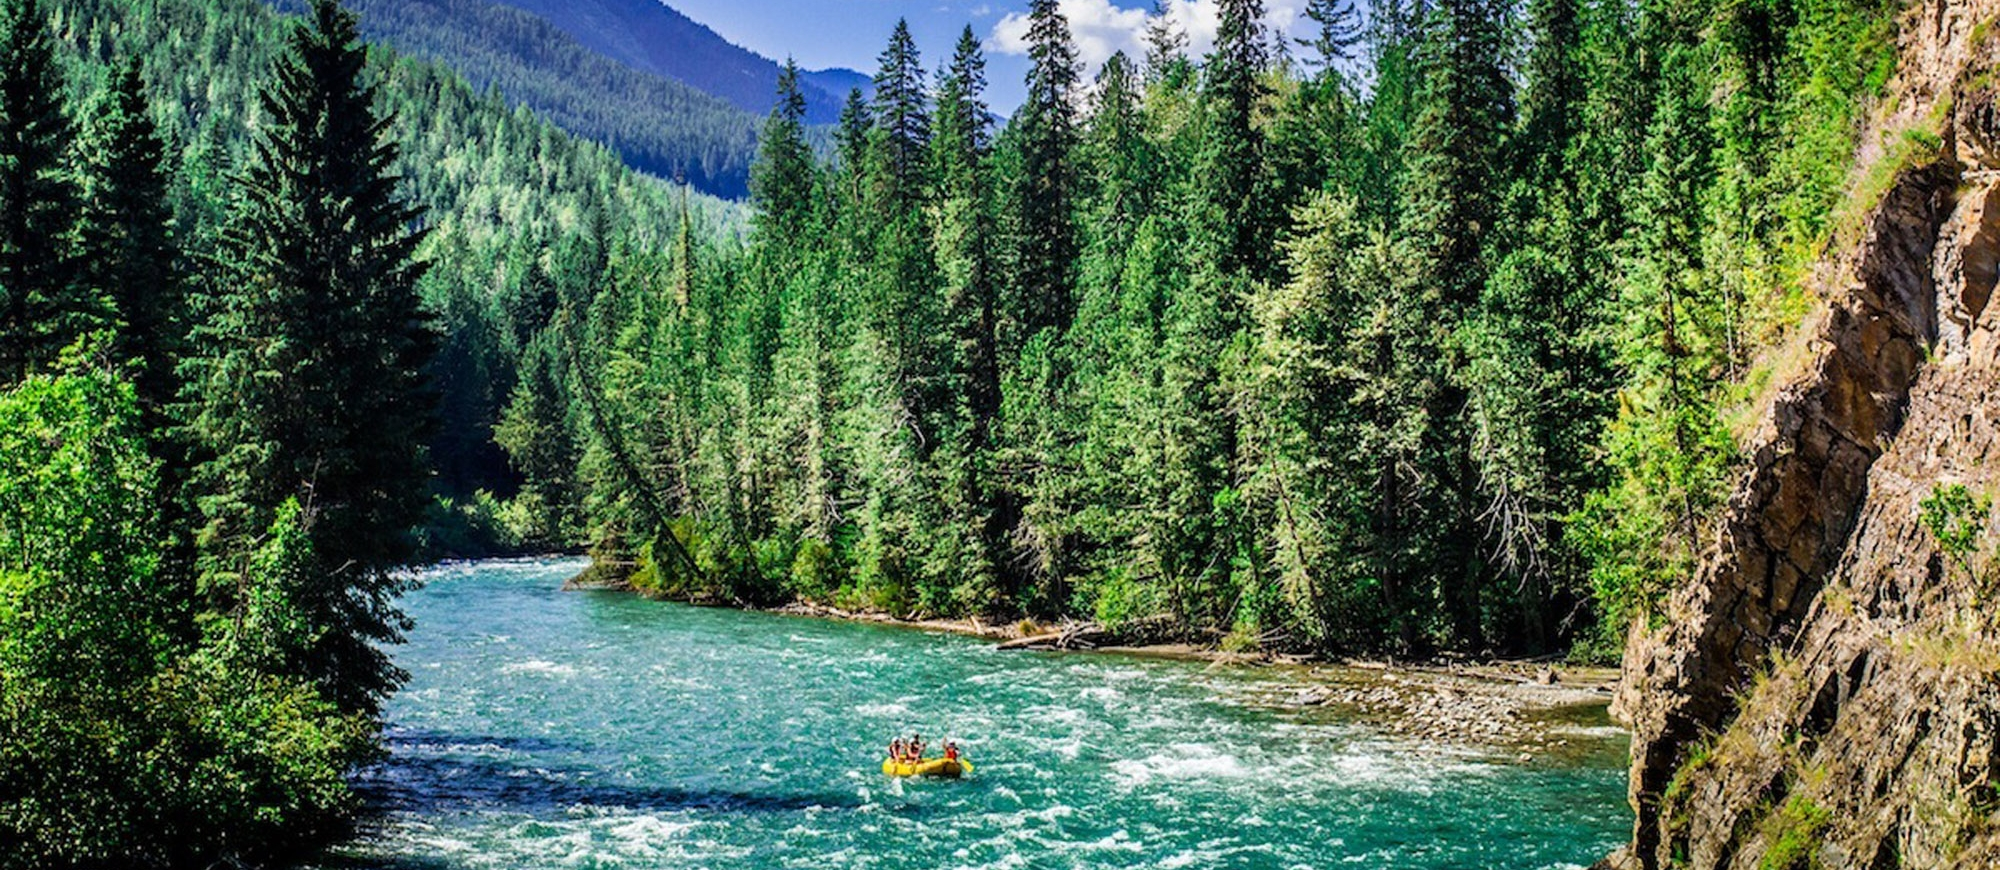 Rafting down the Lardeau River near nelson, BC.